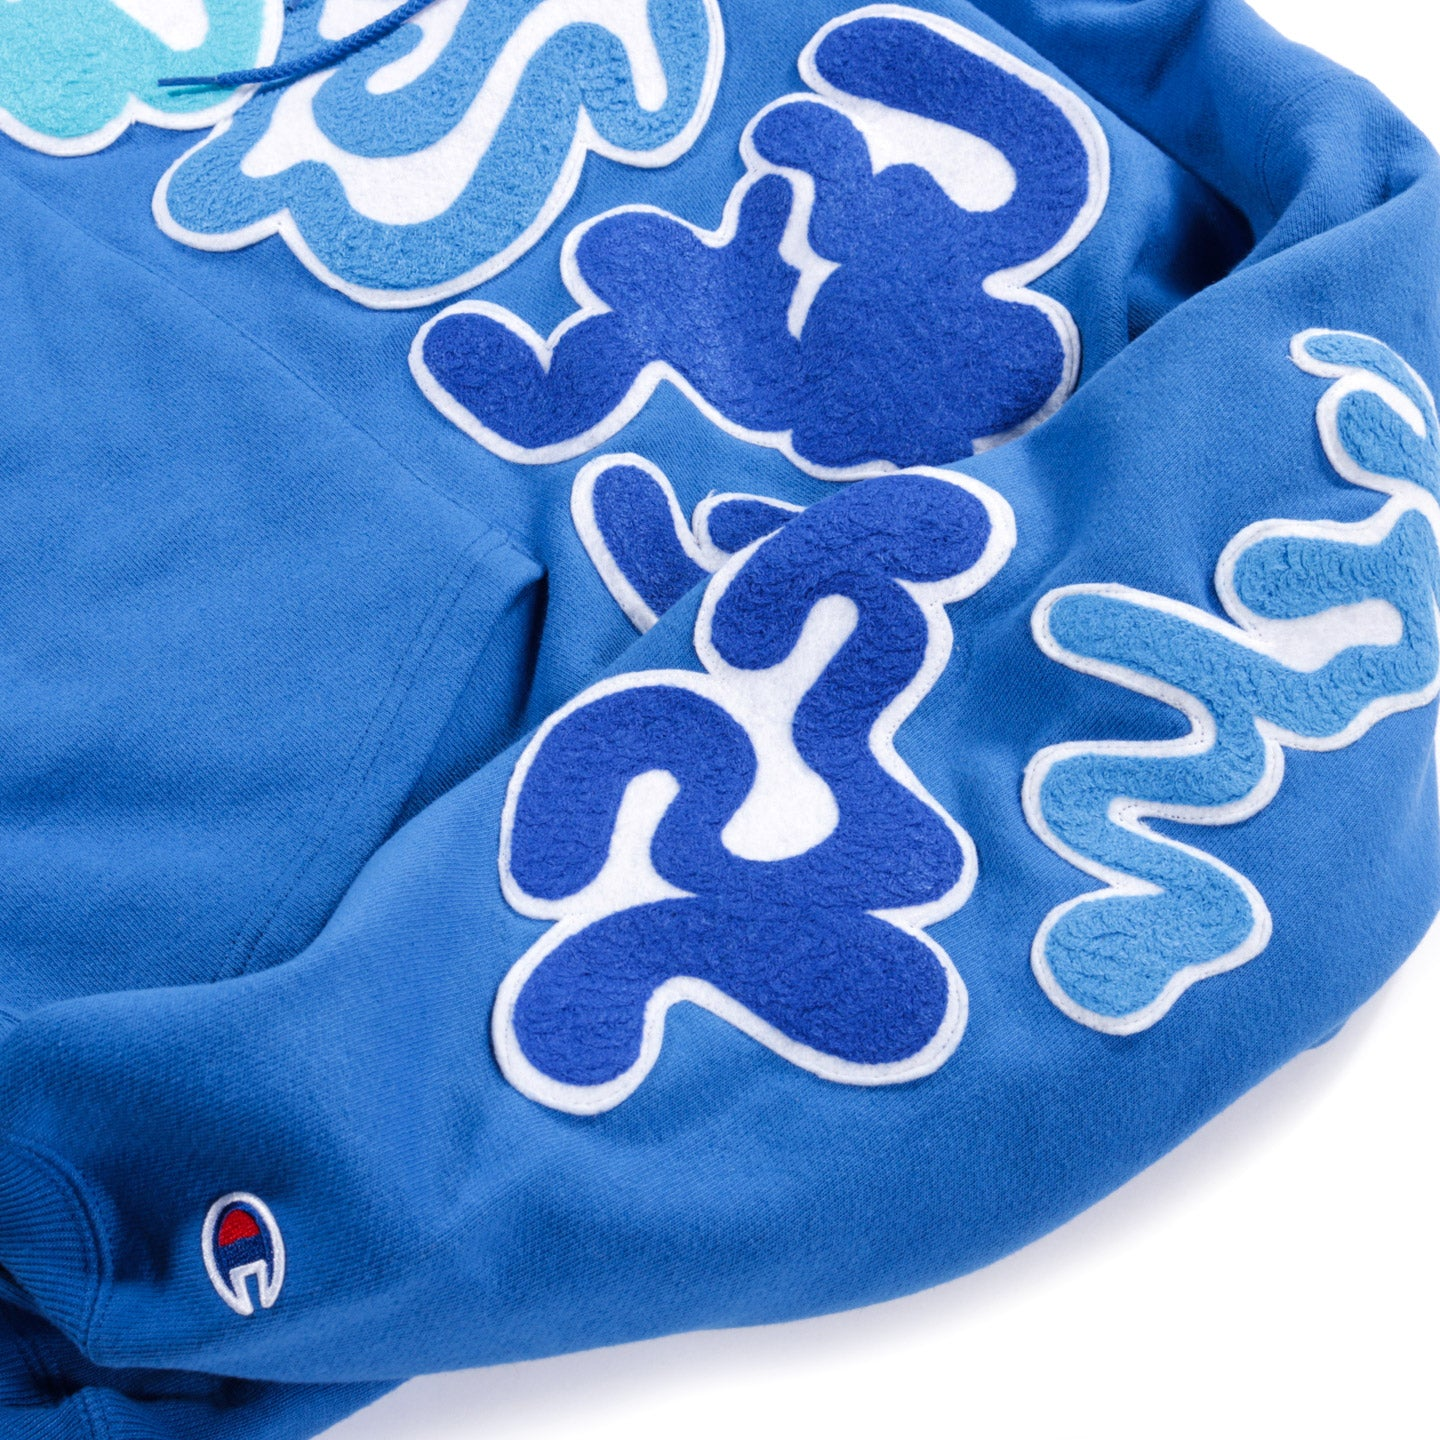 LEO ASHER MARGOLIS CHAIN STITCH EMBROIDERED PATCH HOODIE BLUE - L (A)